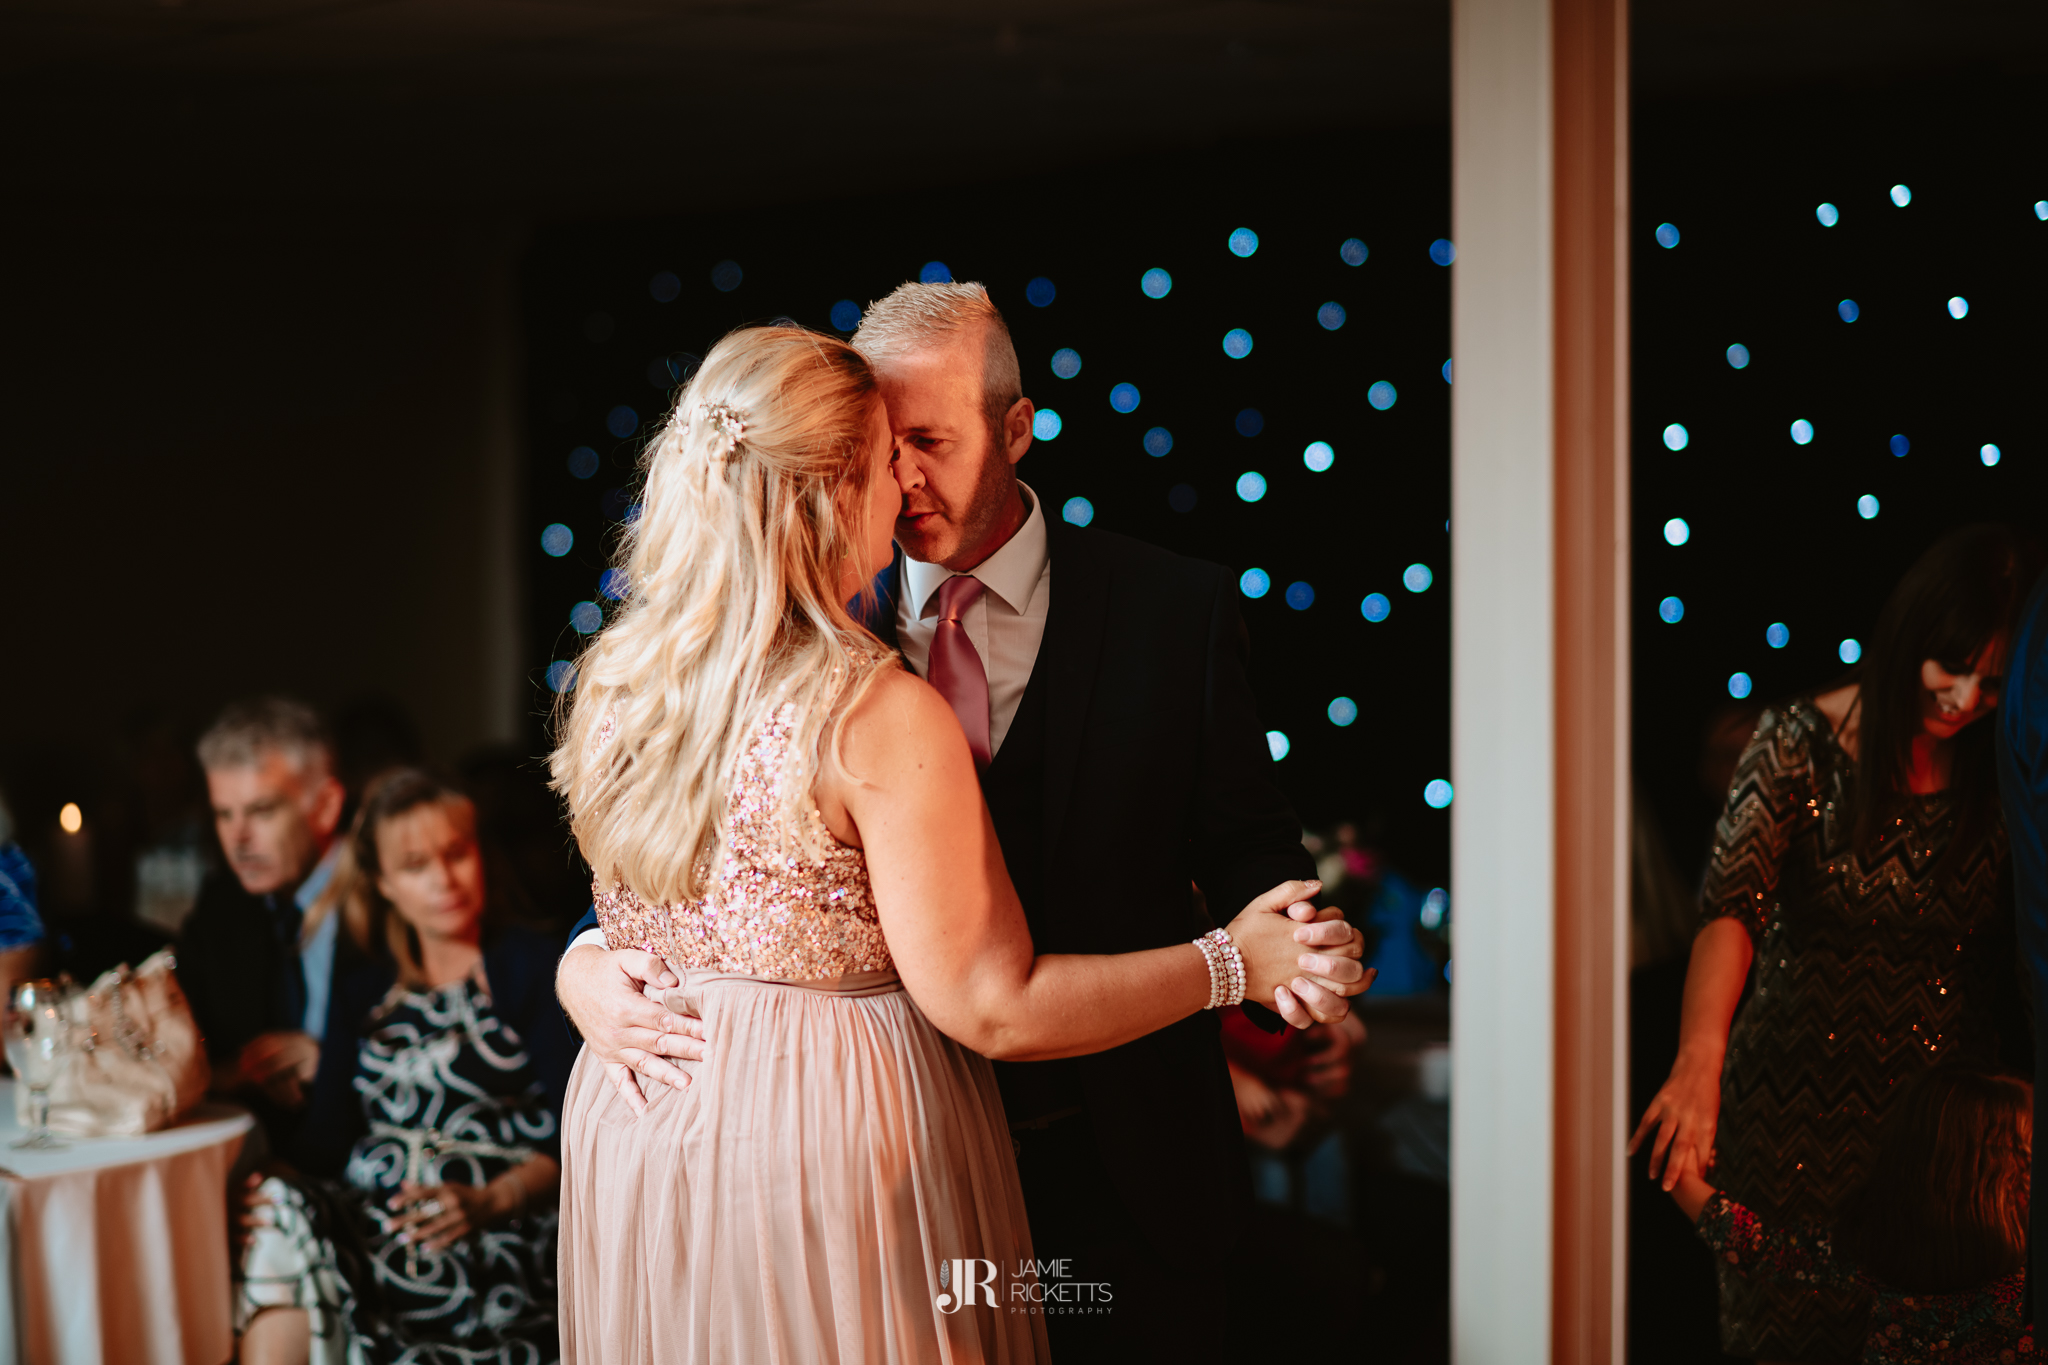 Wroxeter-Hotel-Wedding-Photography-In-Shropshire-By-Shropshire-Wedding-Photographer-Jamie-Ricketts-223.JPG